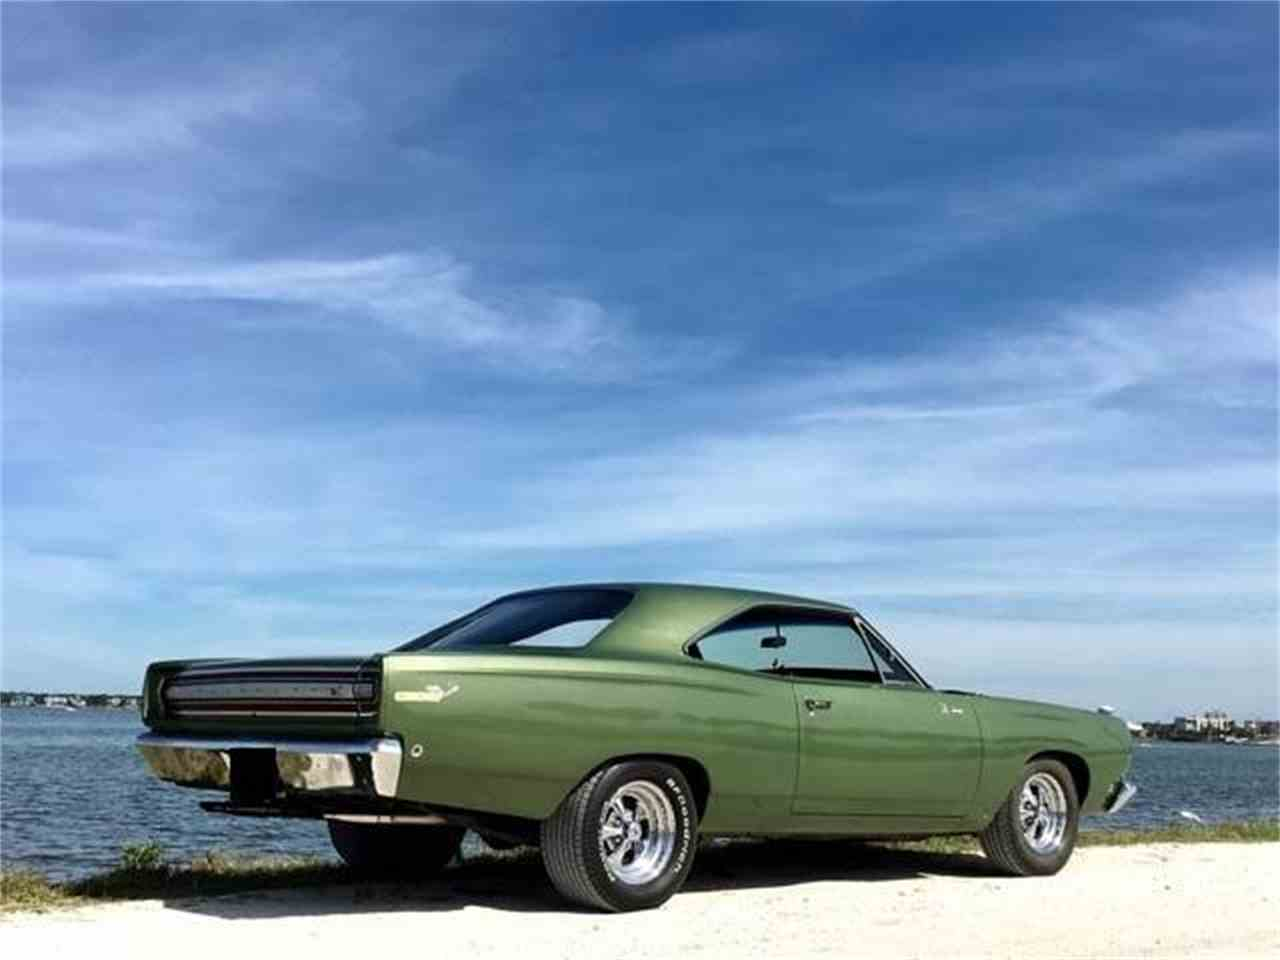 1970 Roadrunner Wiring Diagram Best Electrical Schematic Plymouth Road Runner Dash Toyota Radio Harness Ford